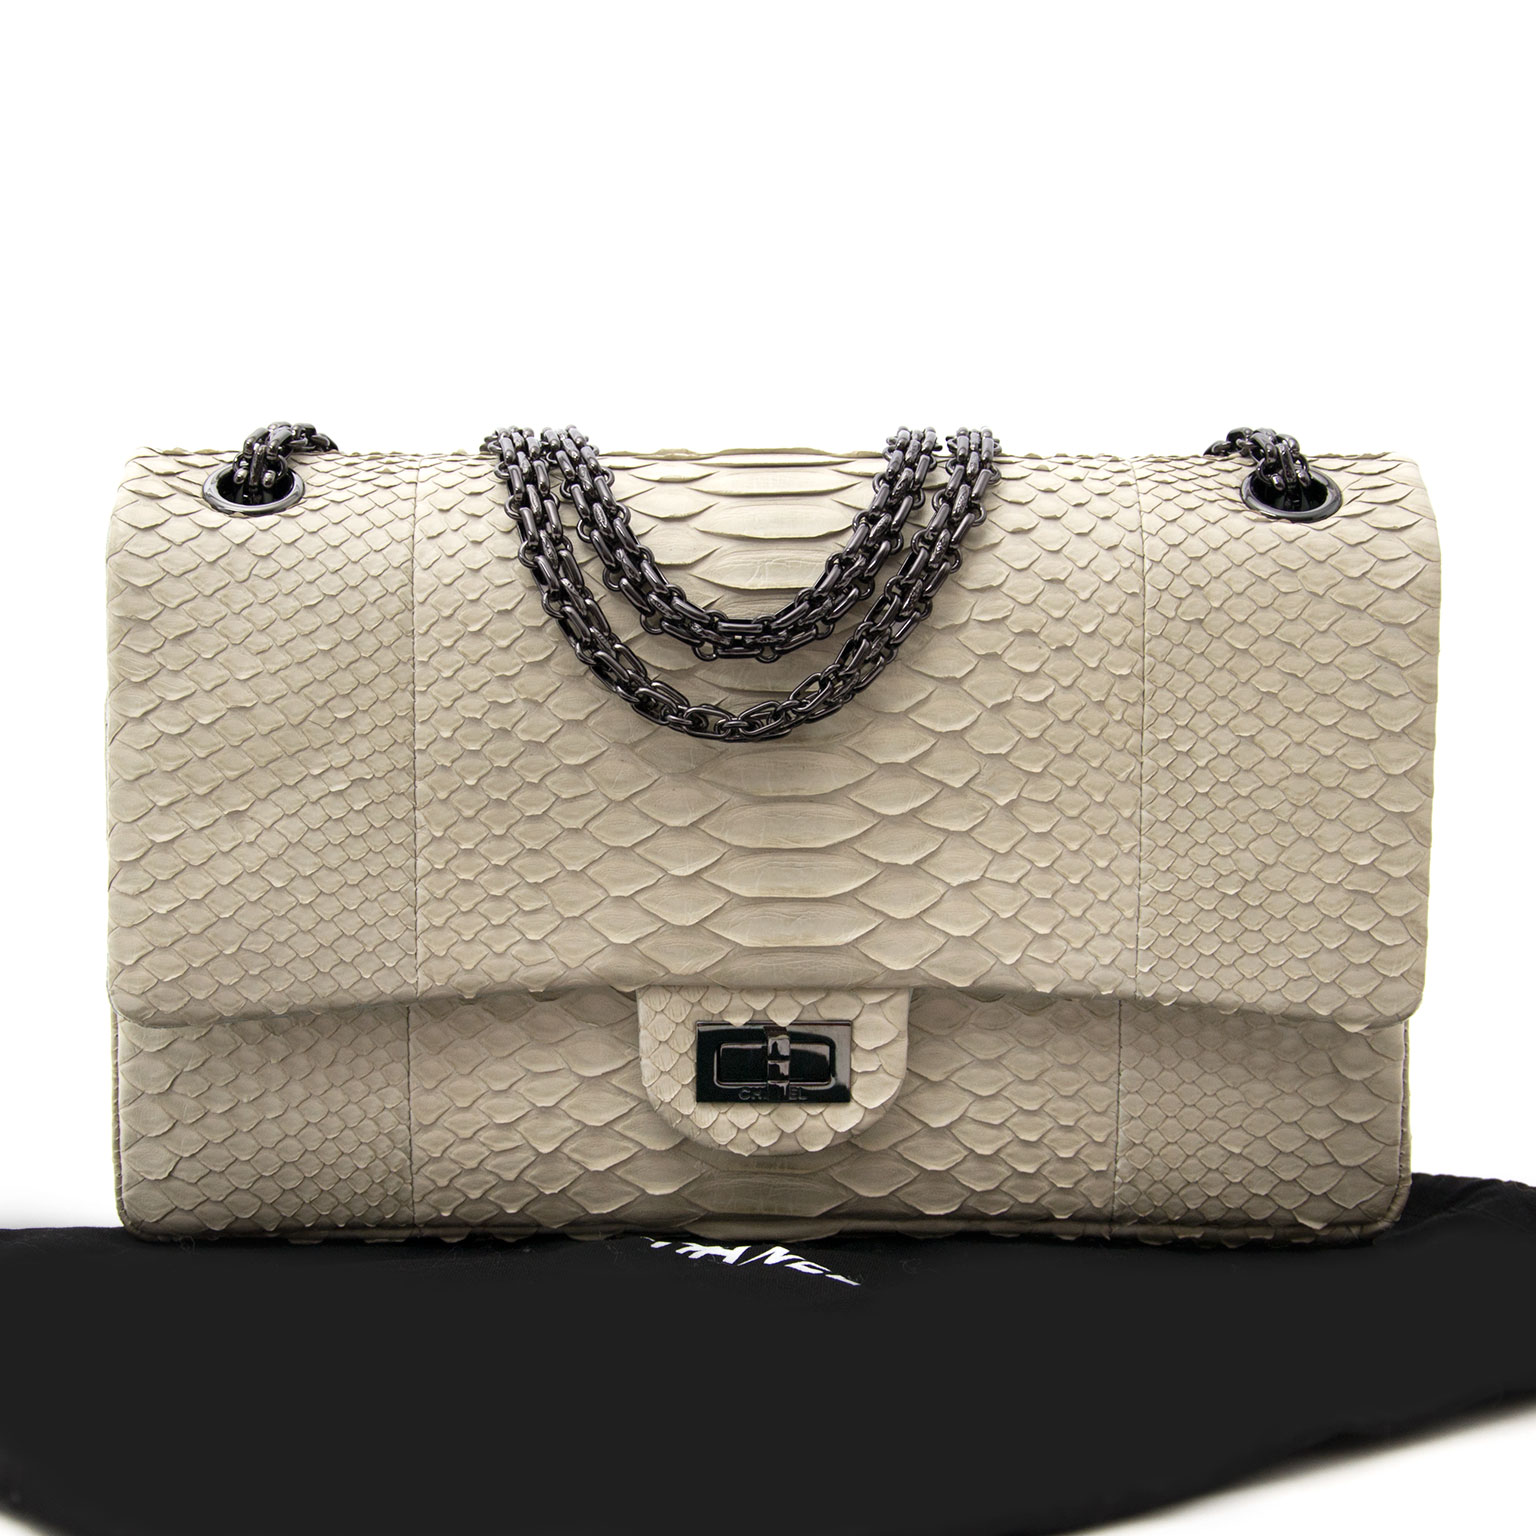 Buy a secondhand Chanel Beige Phyton 2.55 Jumbo Flap Bag at Labellov.com